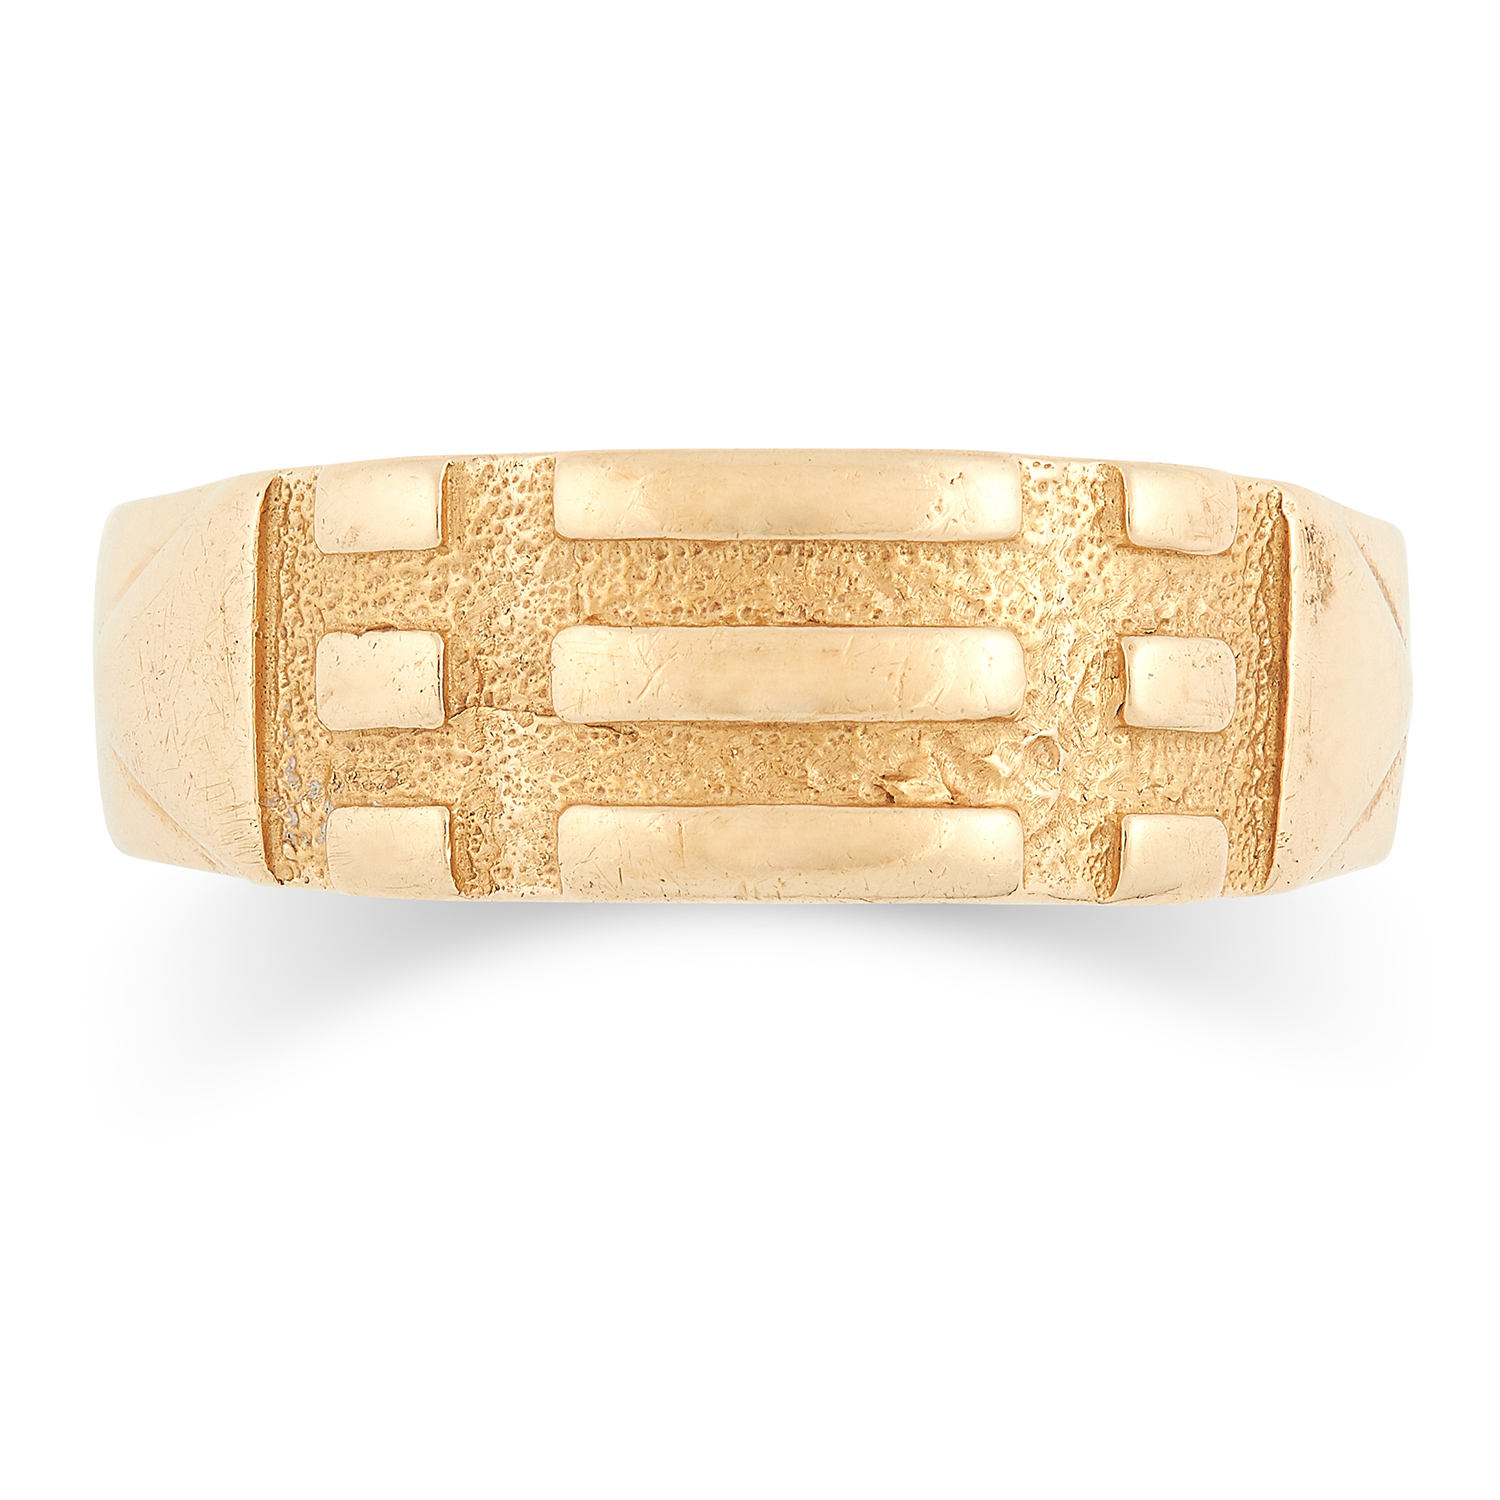 ENGRAVED WEDDING BAND with the phrase 'CARPEDIEM - MAMA' engraved, size W / 11, 4.7g.